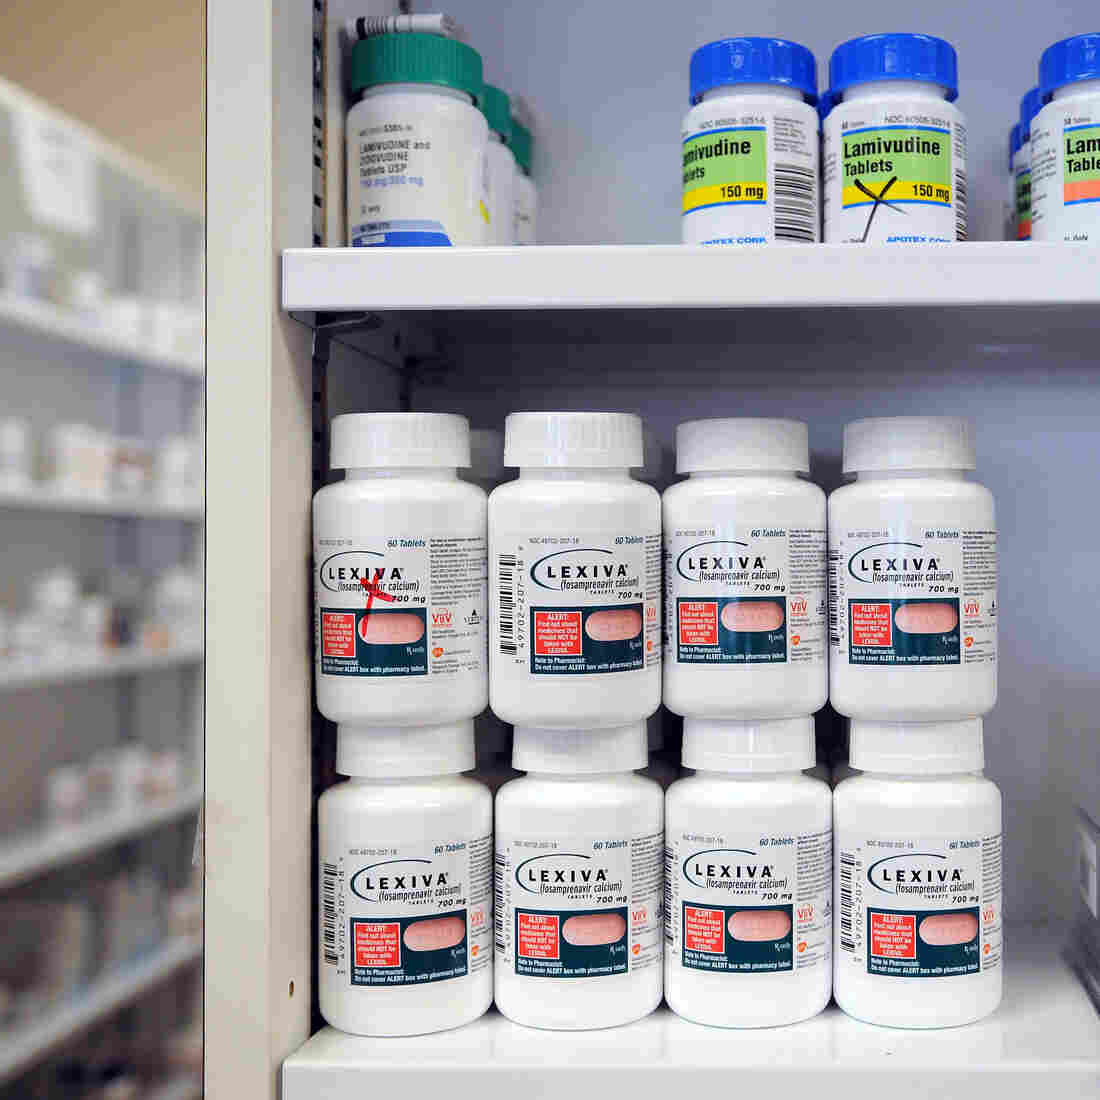 AIDS drugs line a pharmacy's shelves. A new recommendation from the World Health Organization suggests a daily anti-HIV pill for men who have sex with men.